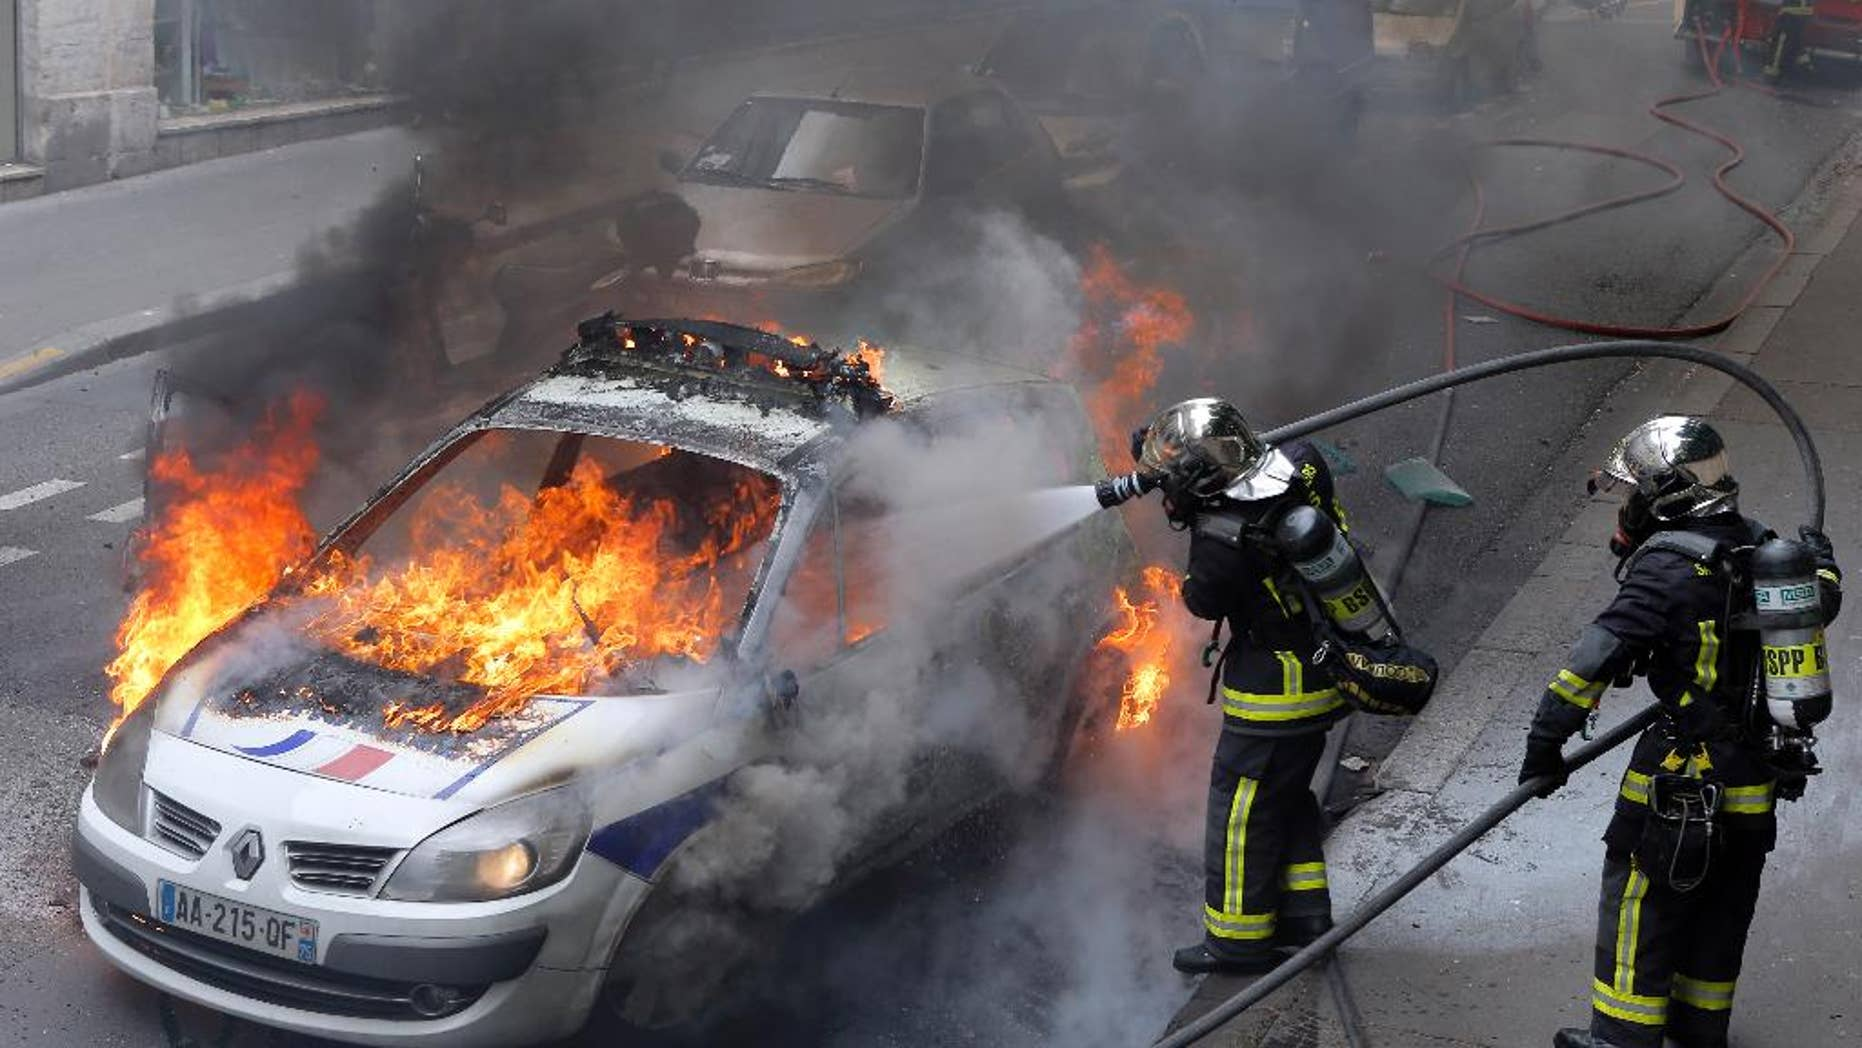 French police protest against violence they say is aimed at them | Fox News